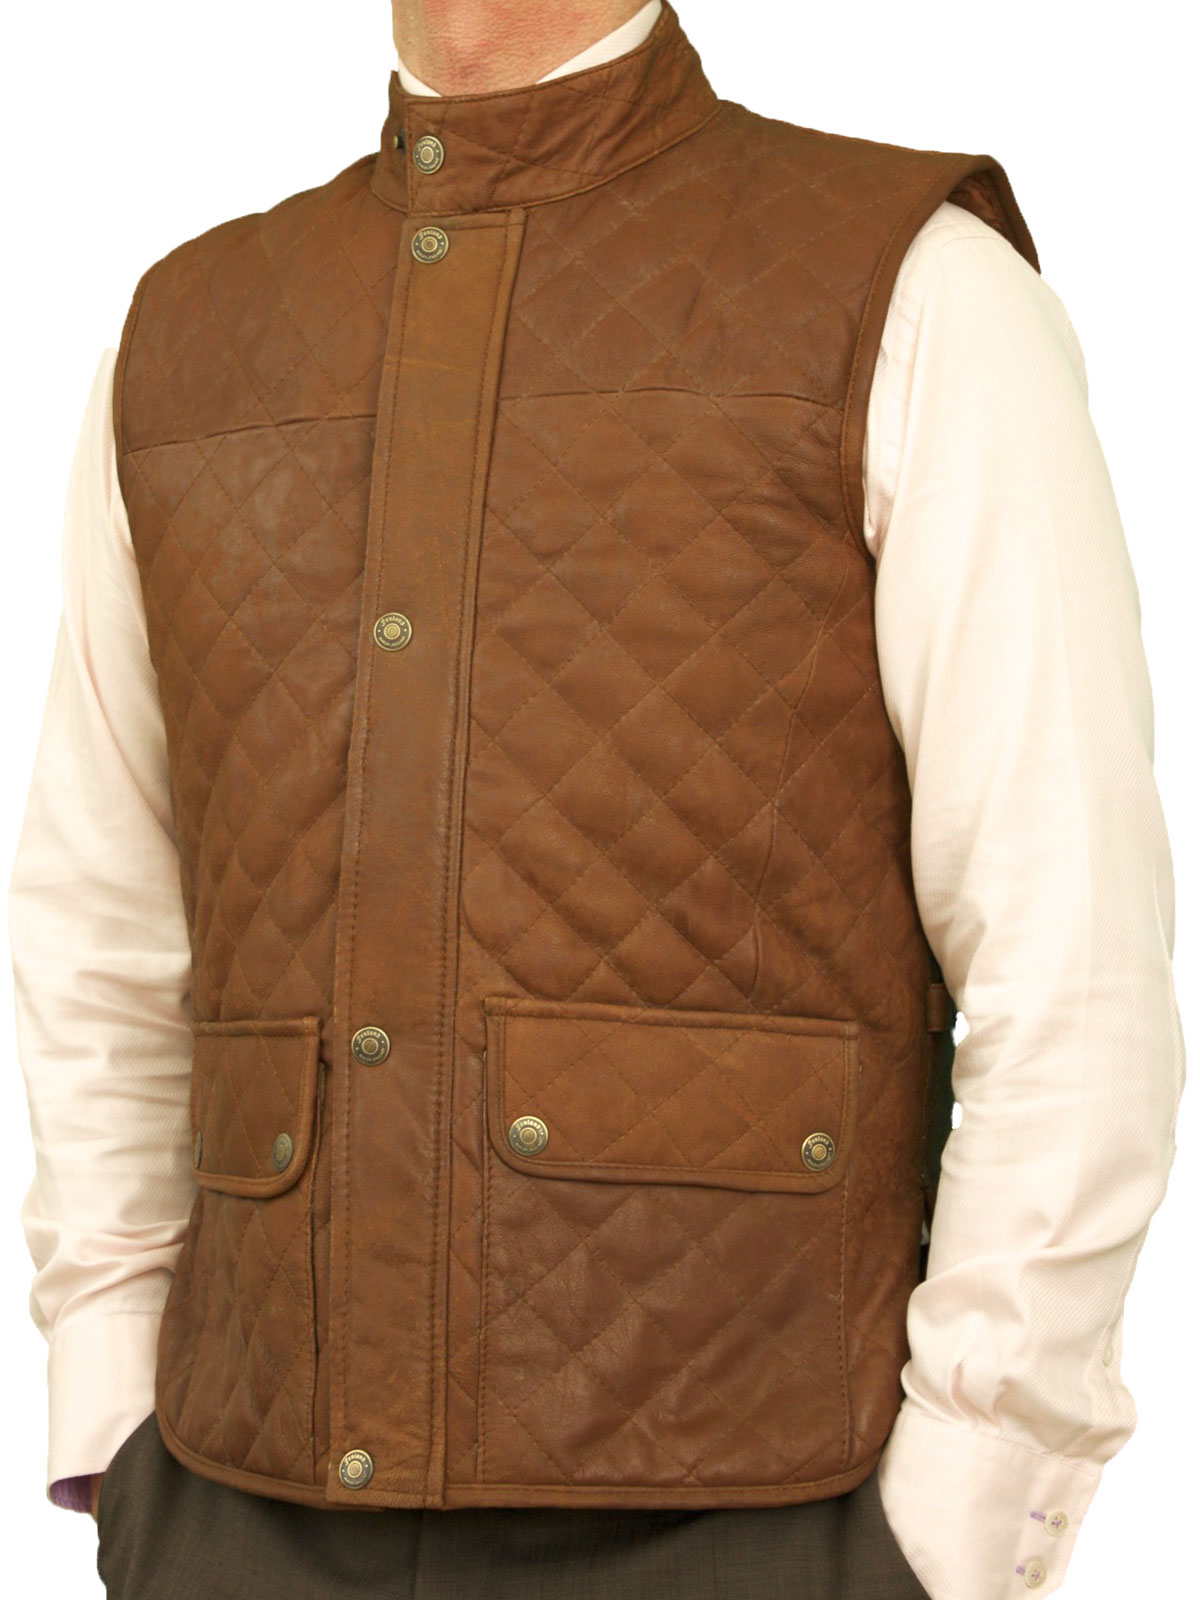 Fight off the bitter cold in style with our fantastic selection of men's gilets, waistcoats, and liners. Whether you're looking for further insulation under your beloved Barbour jacket or lighter outerwear for the cooler nights; our men's body warmers collection is functional fashion at its best.